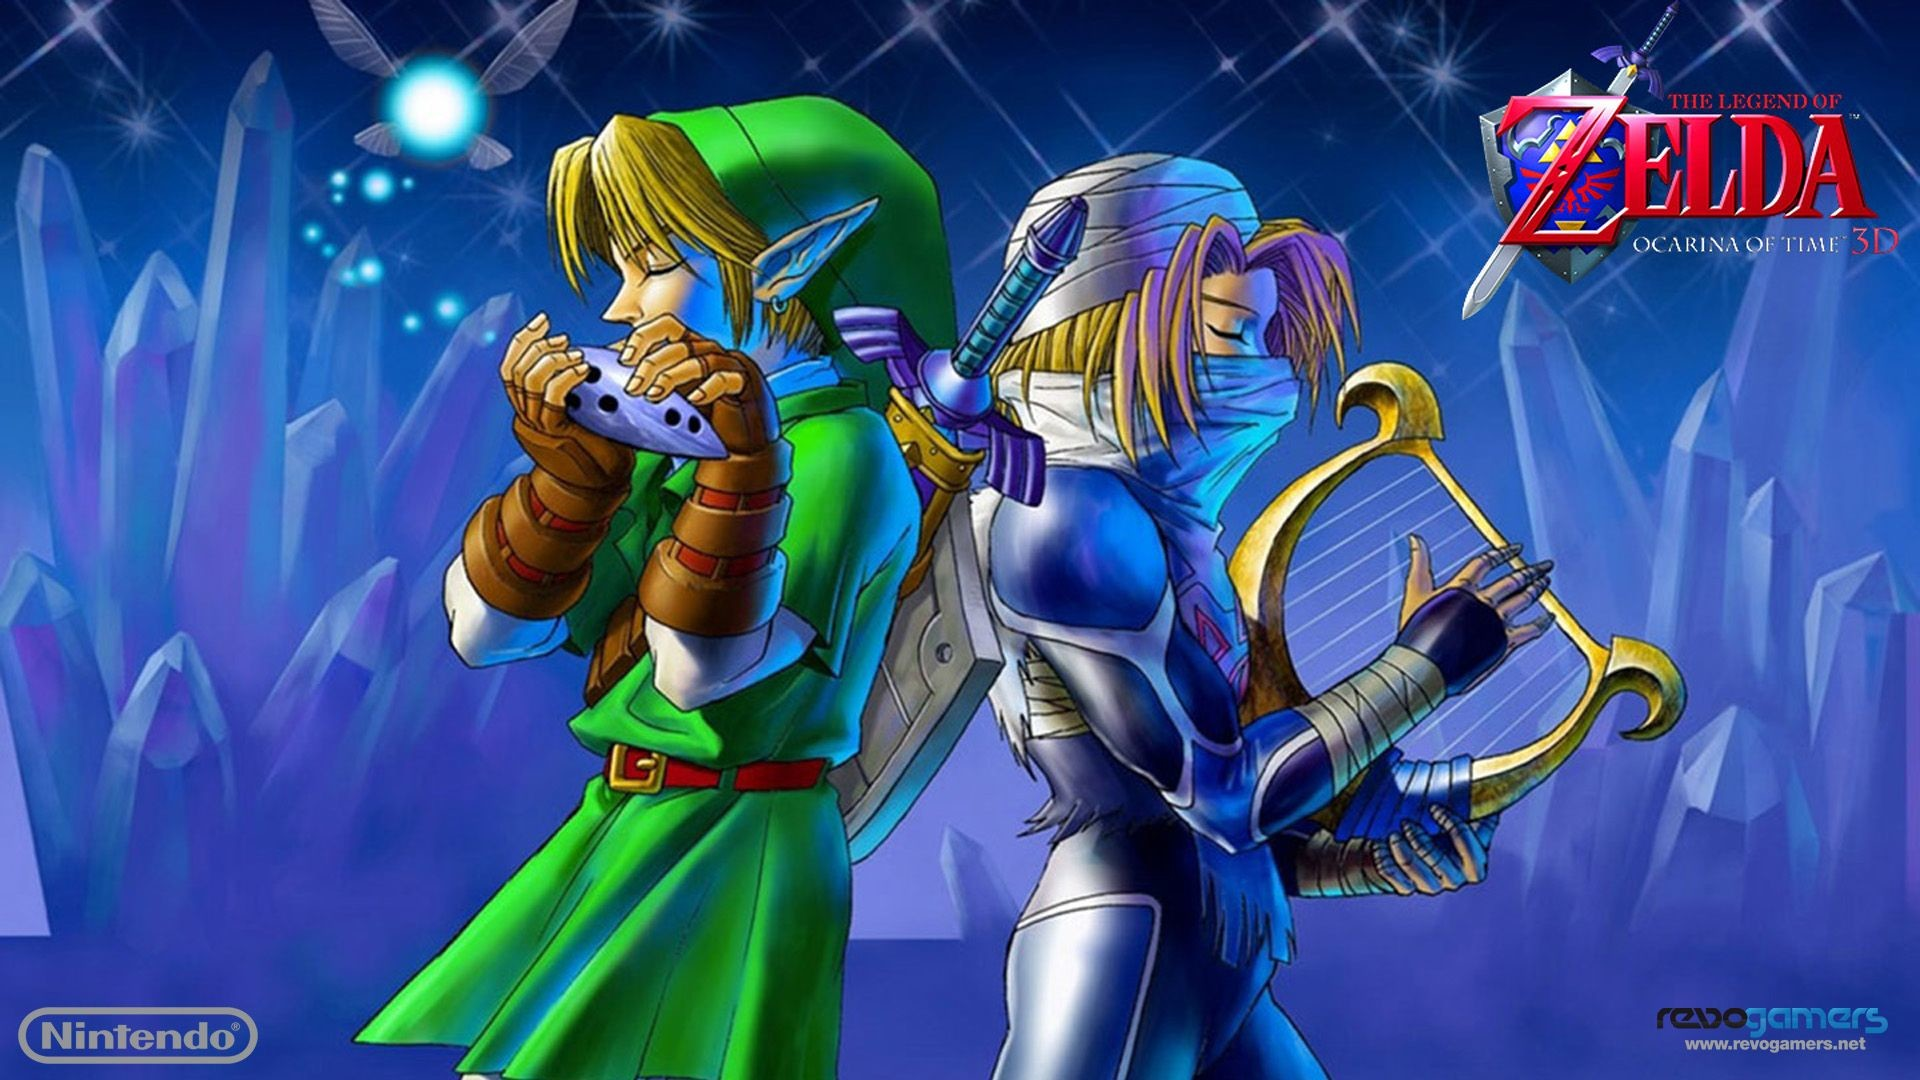 Res: 1920x1080, The Legend of Zelda: Ocarina of Time - Wallpaper Pictures